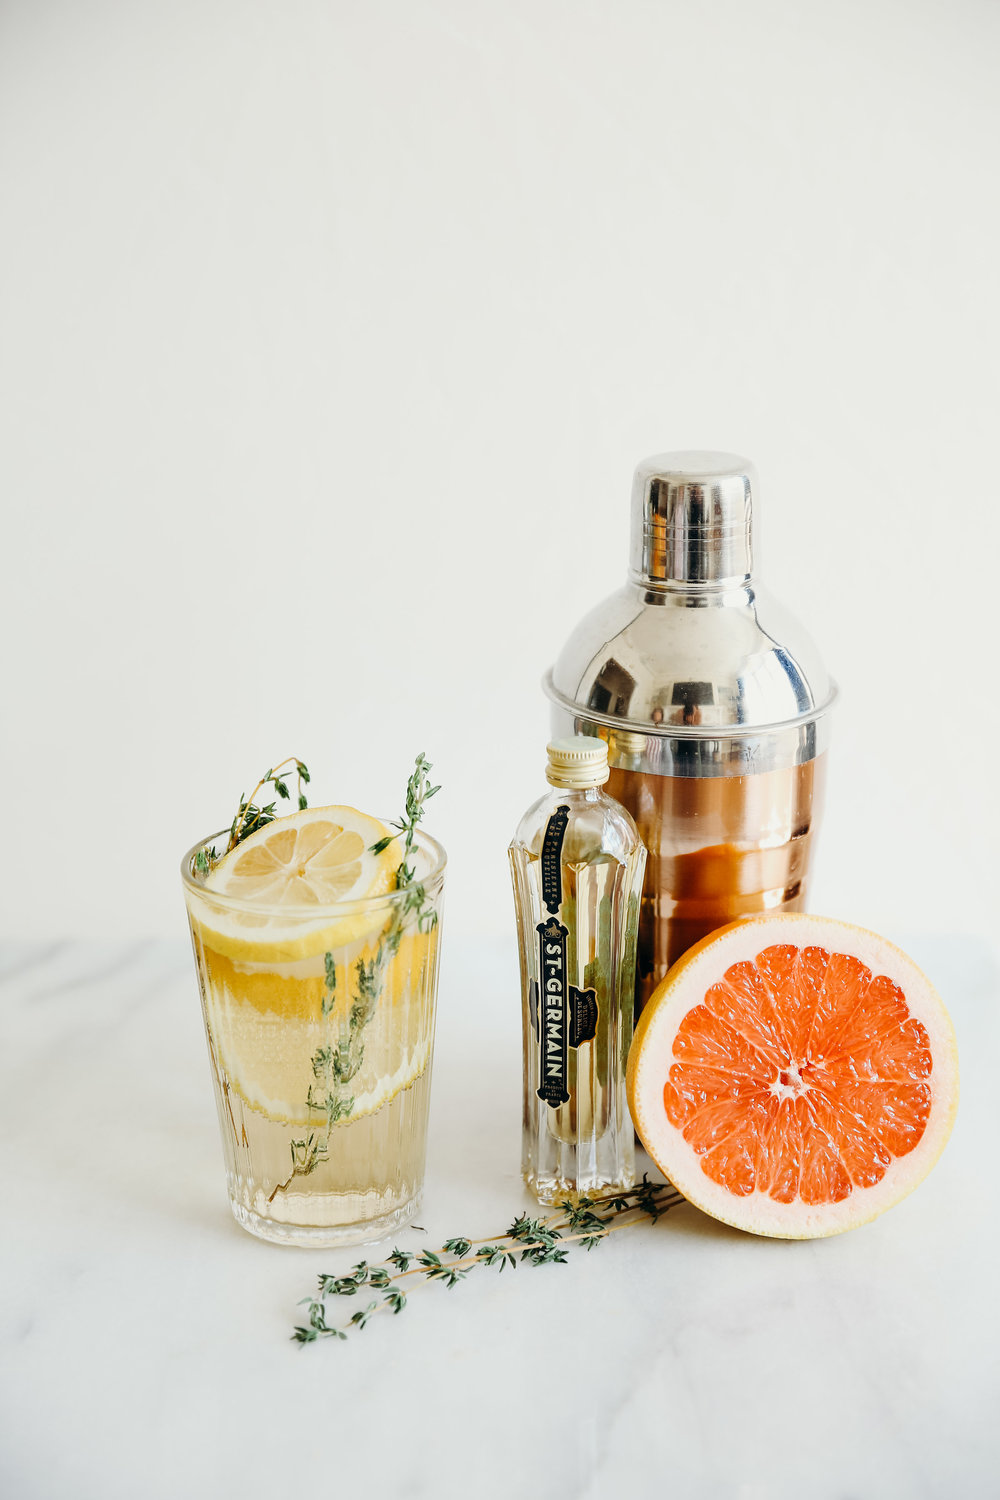 St Germain Cocktail with Lemon and Grapefruit | Hillary Jeanne Photography | Food Photography